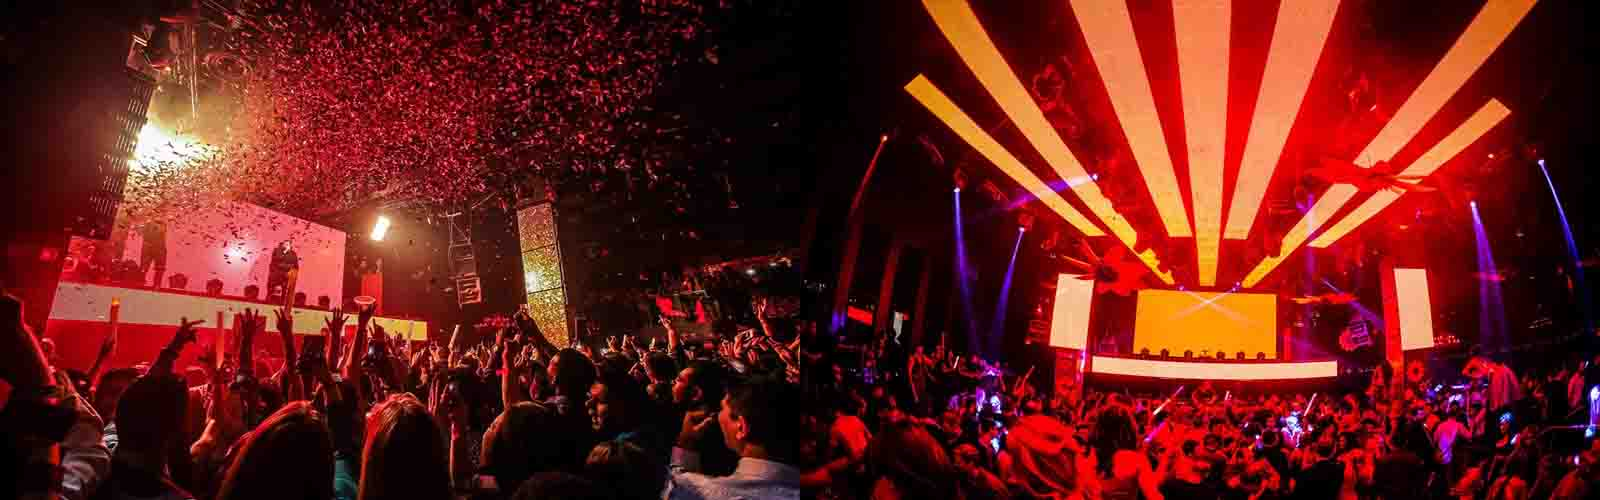 Celebrate your stay in Barcelona at Club Bunker Barcelona